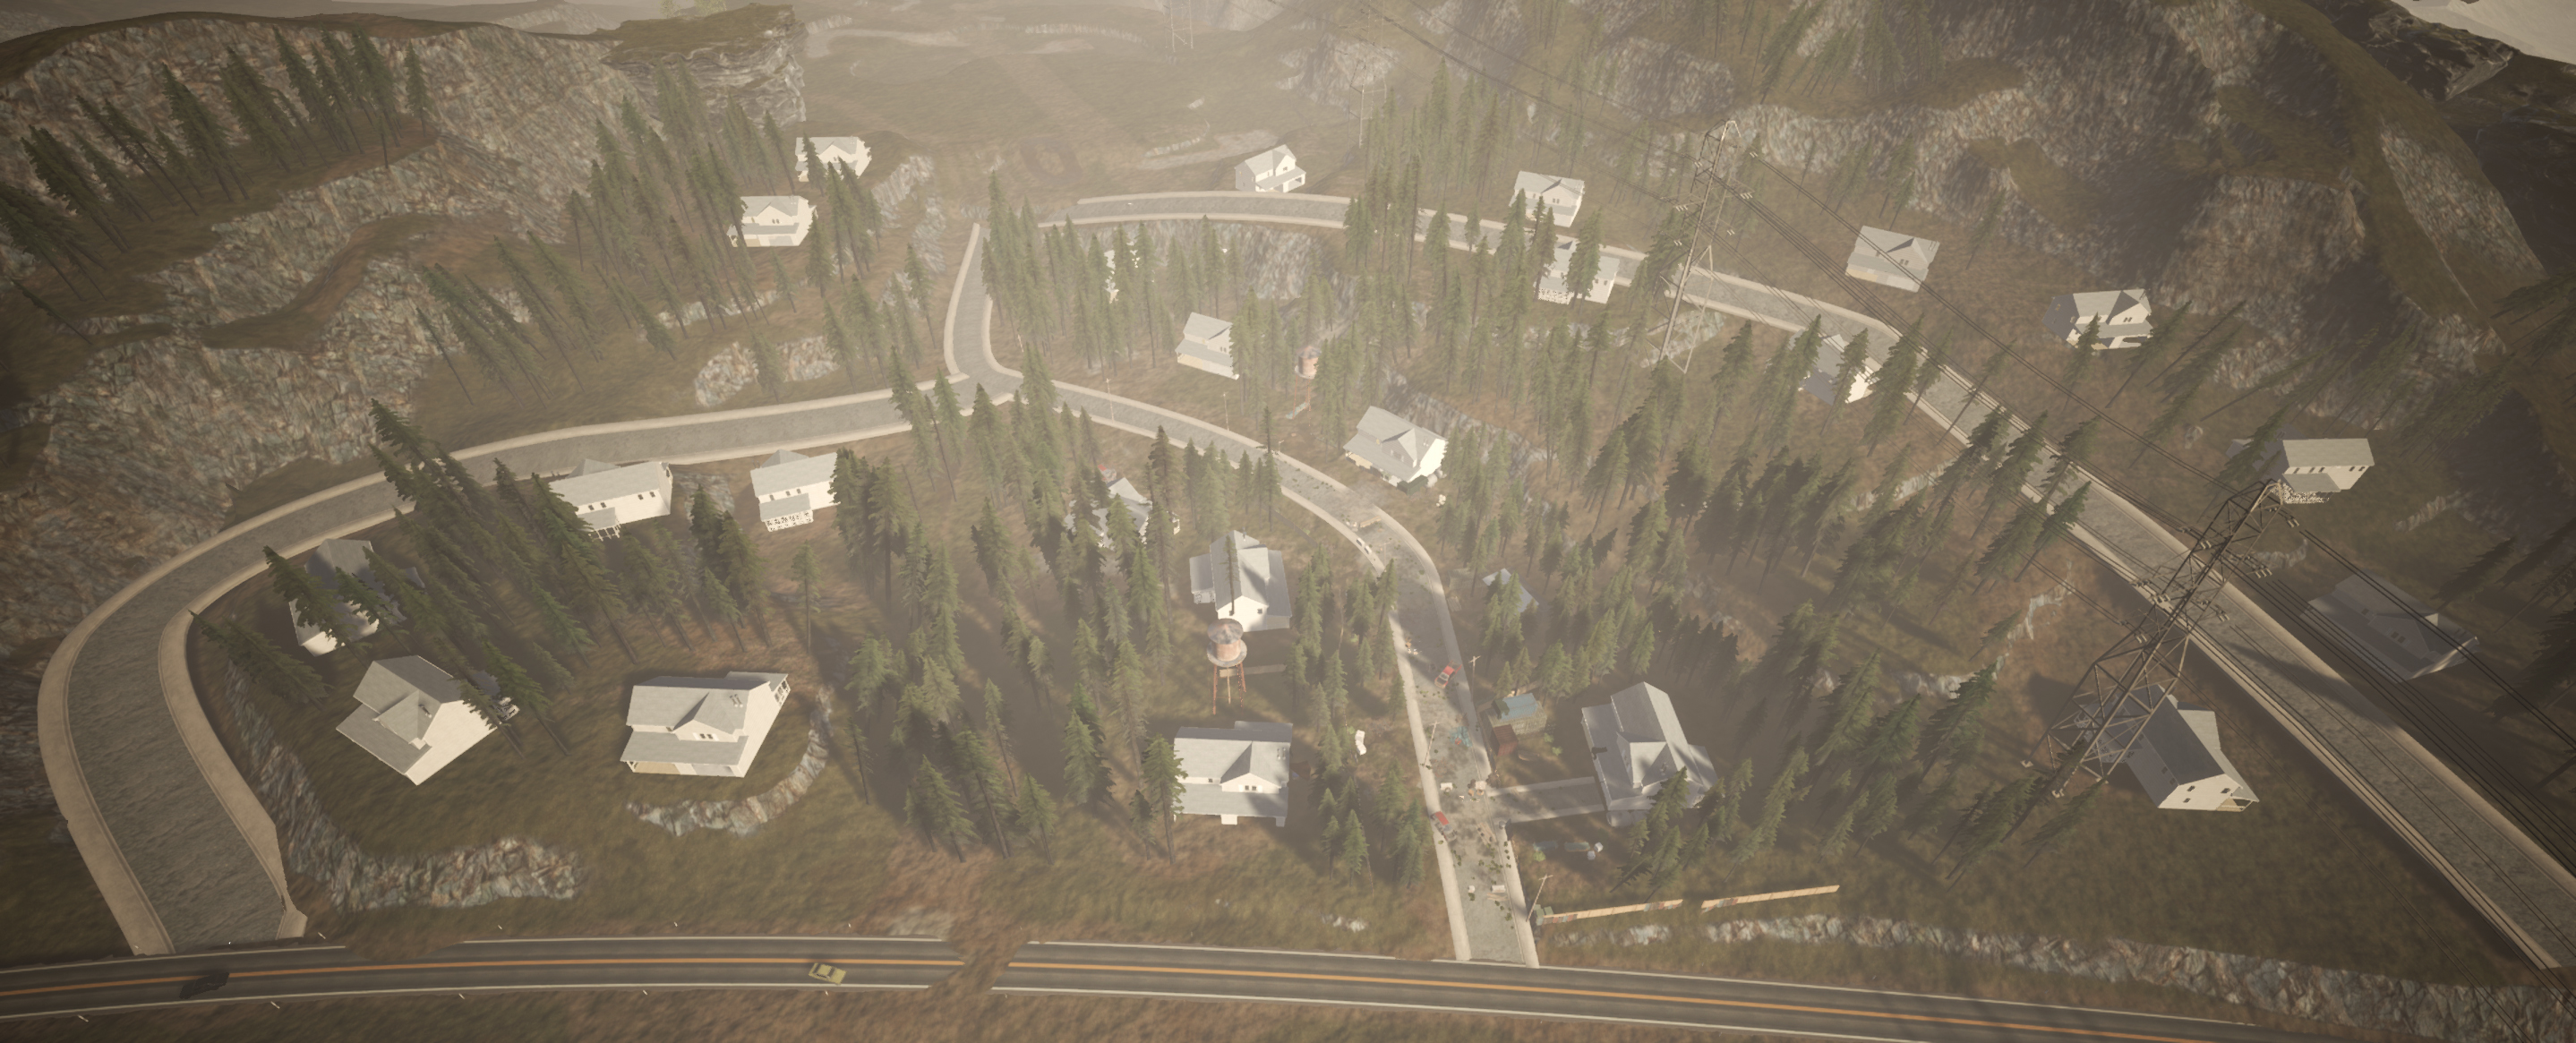 Jan 6 2019 Patch Update Postponed Progress Update Inside Mist Survival Cpt Lord Rati Patch Update Postponed Hello Guys First I Do Apologize About Didn T Update For A While I Was Busy Preparing Some Legal Documents For Declare To My Local Today we have a satellite view of the new map. mist survival cpt lord rati patch